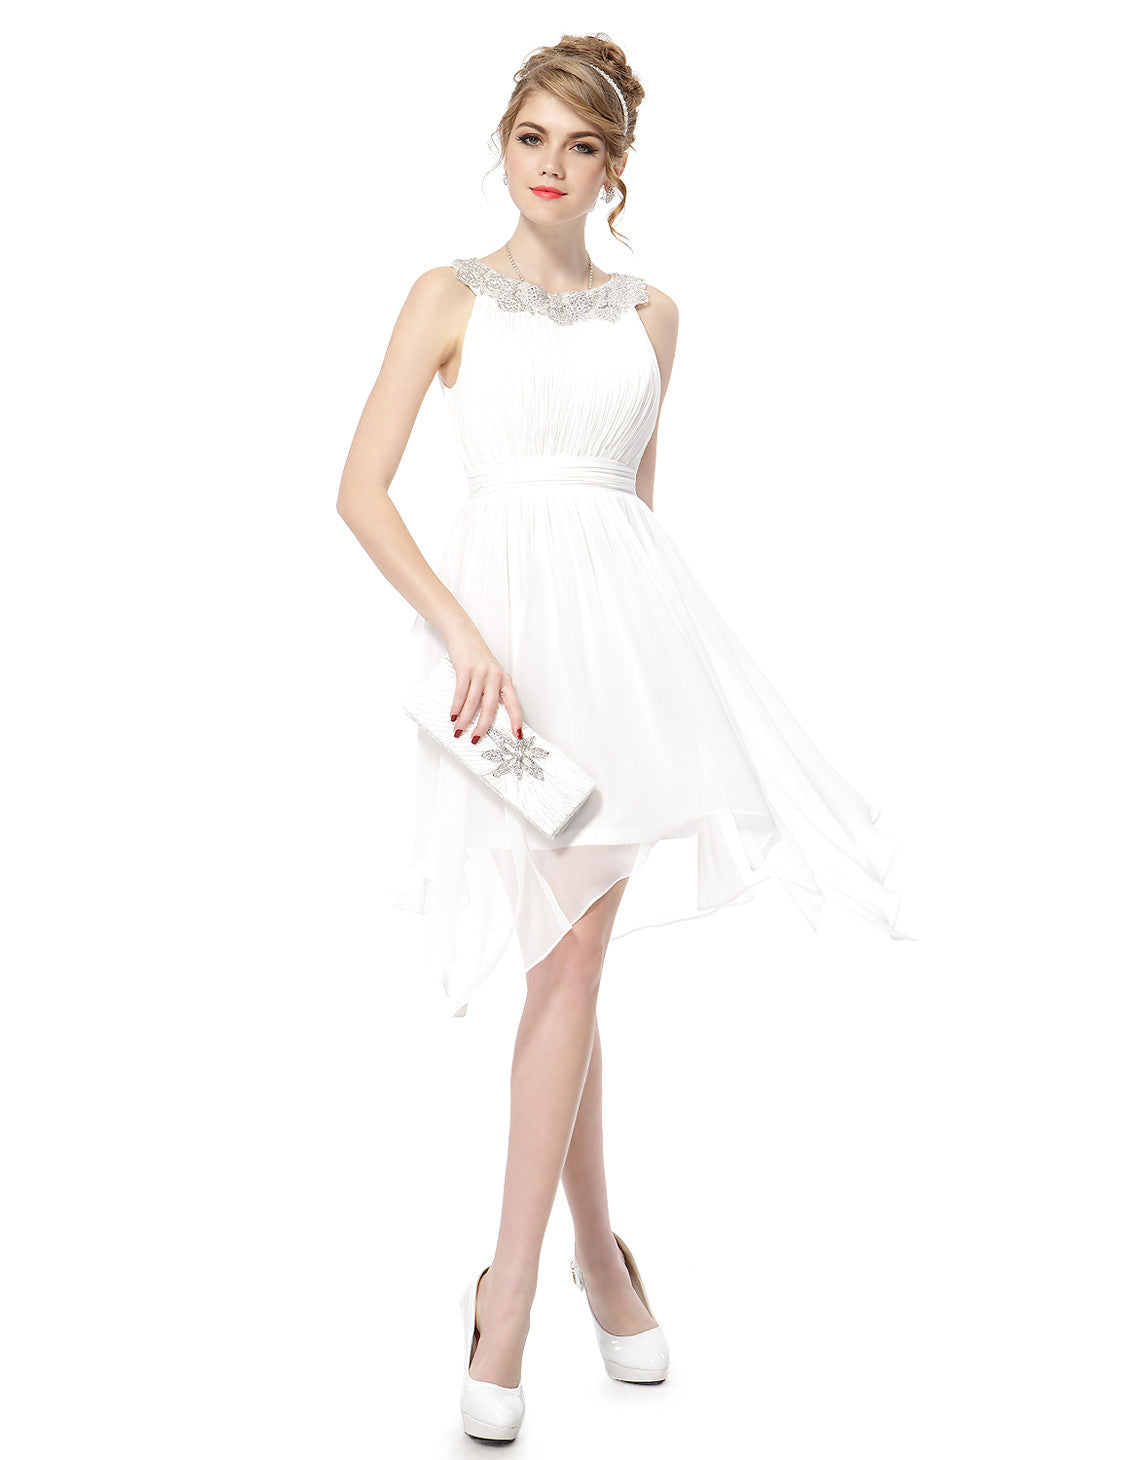 Rhinestone Round Neck White Hi-low Short Party Dress